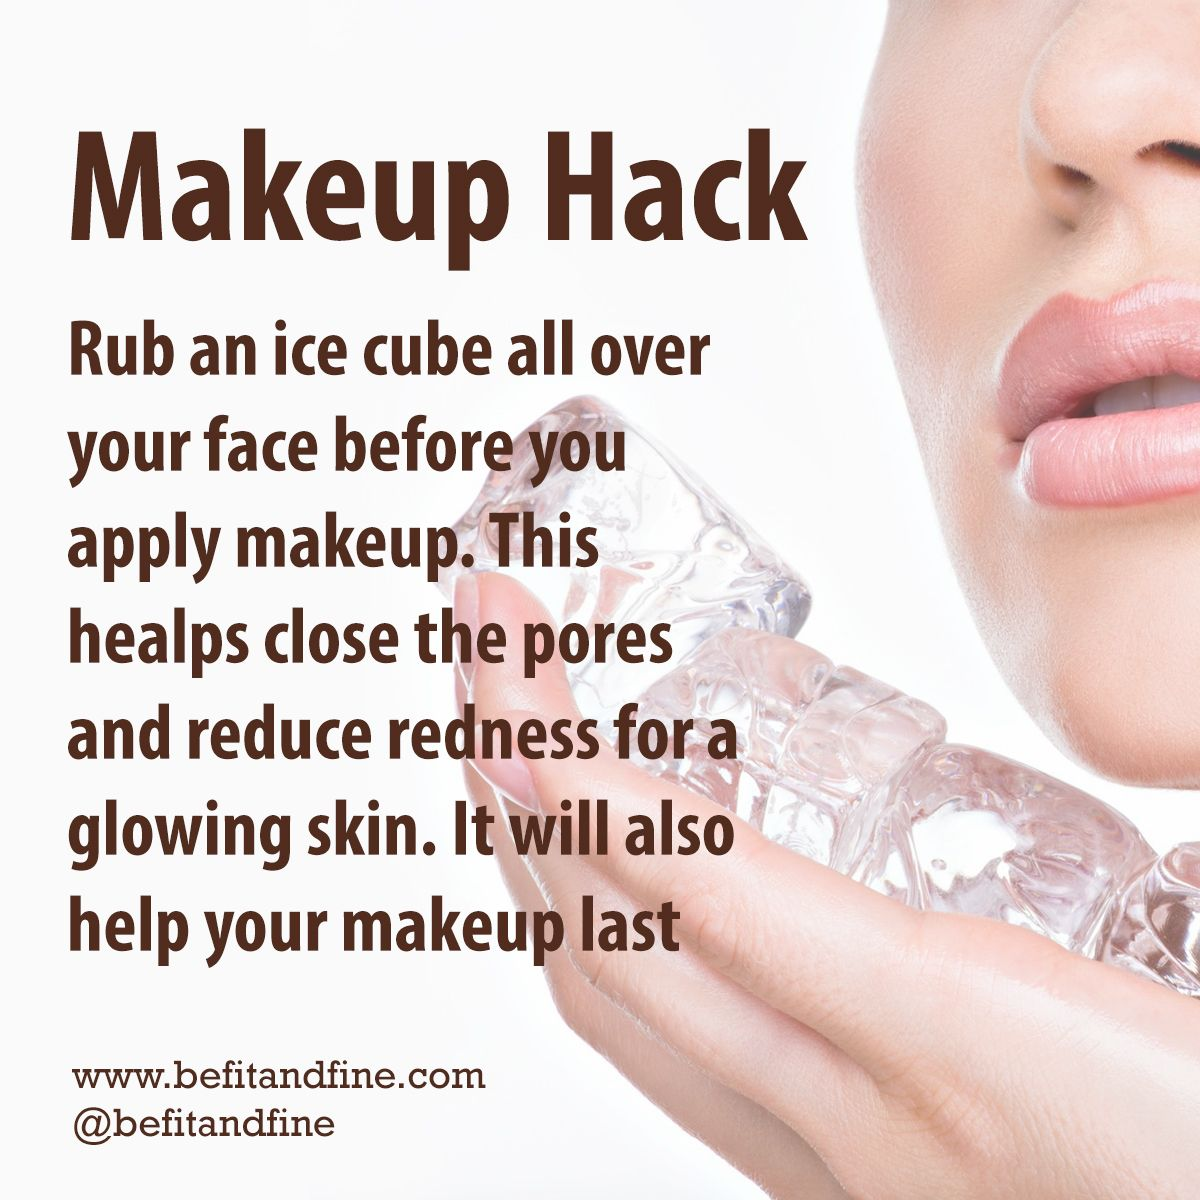 Rub an ice cube all over your face before you apply makeup. This